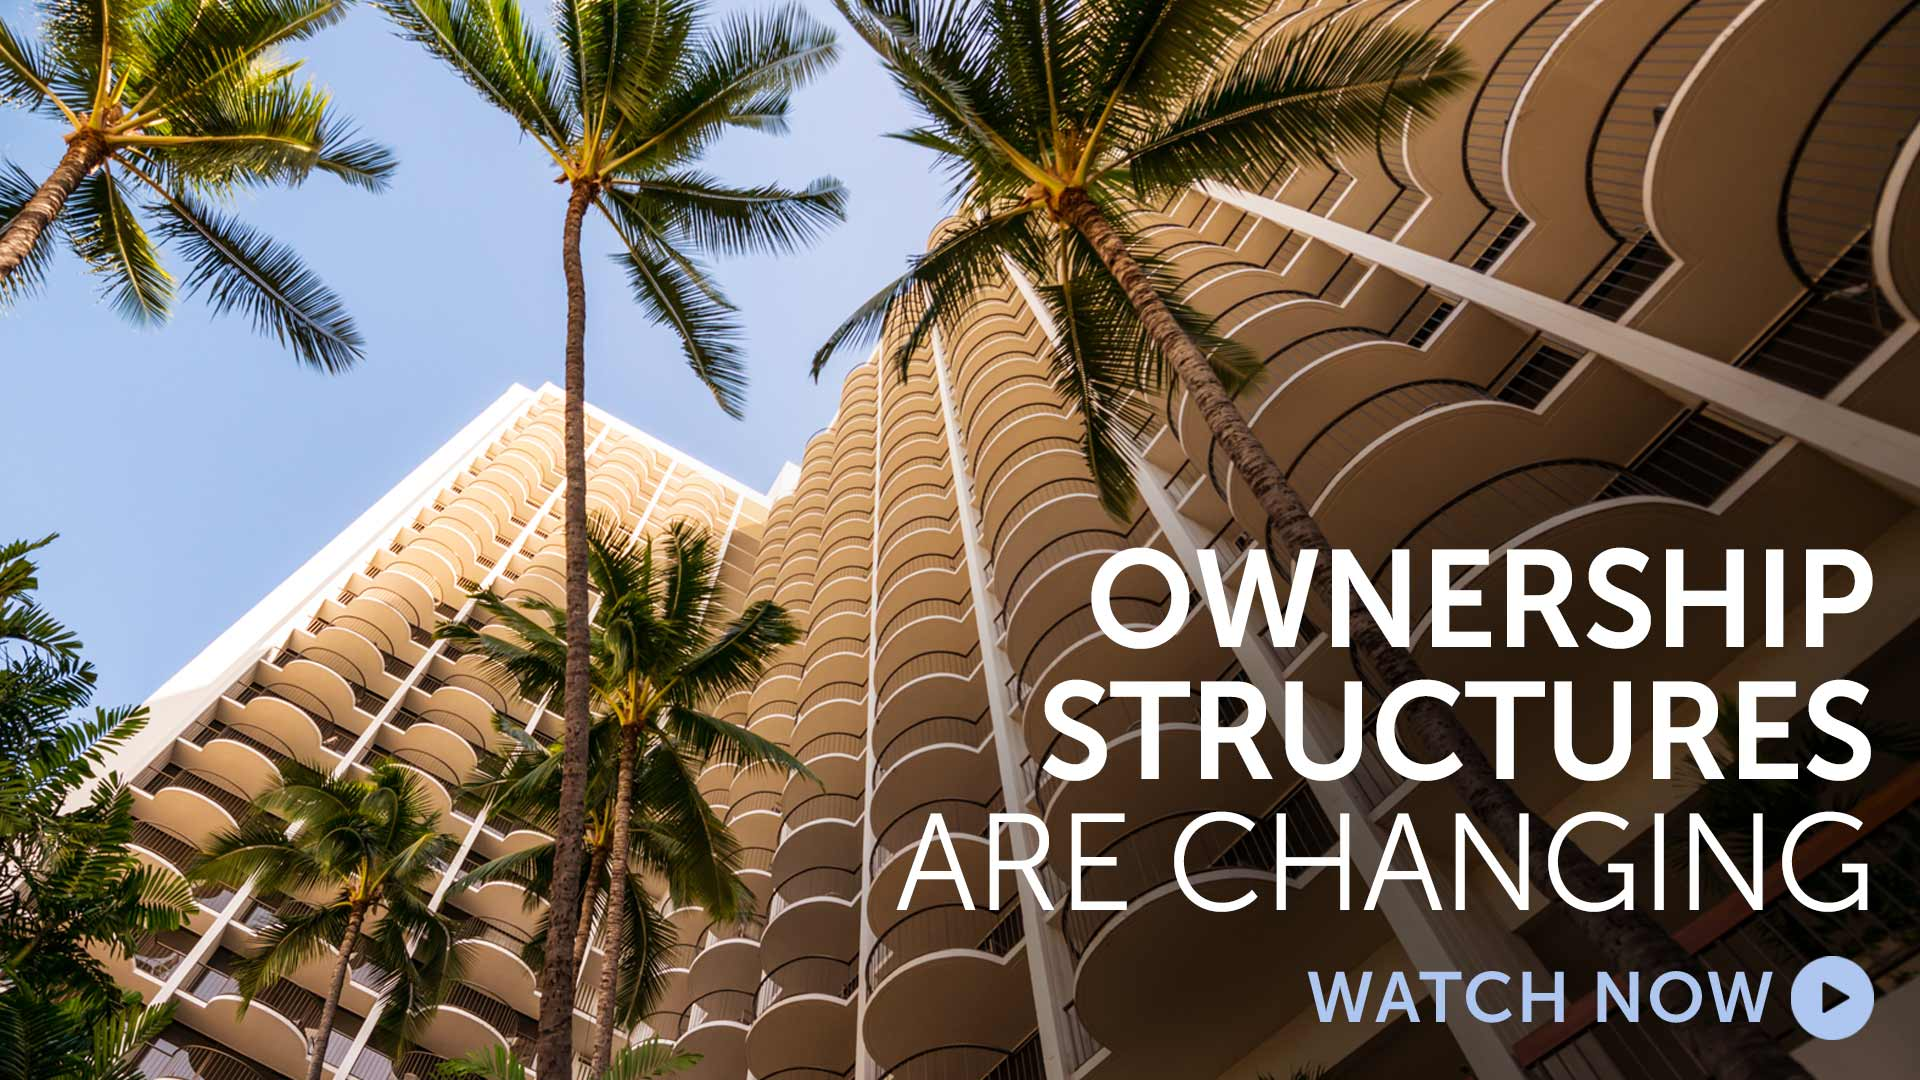 Briefing: Ownership structures are changing